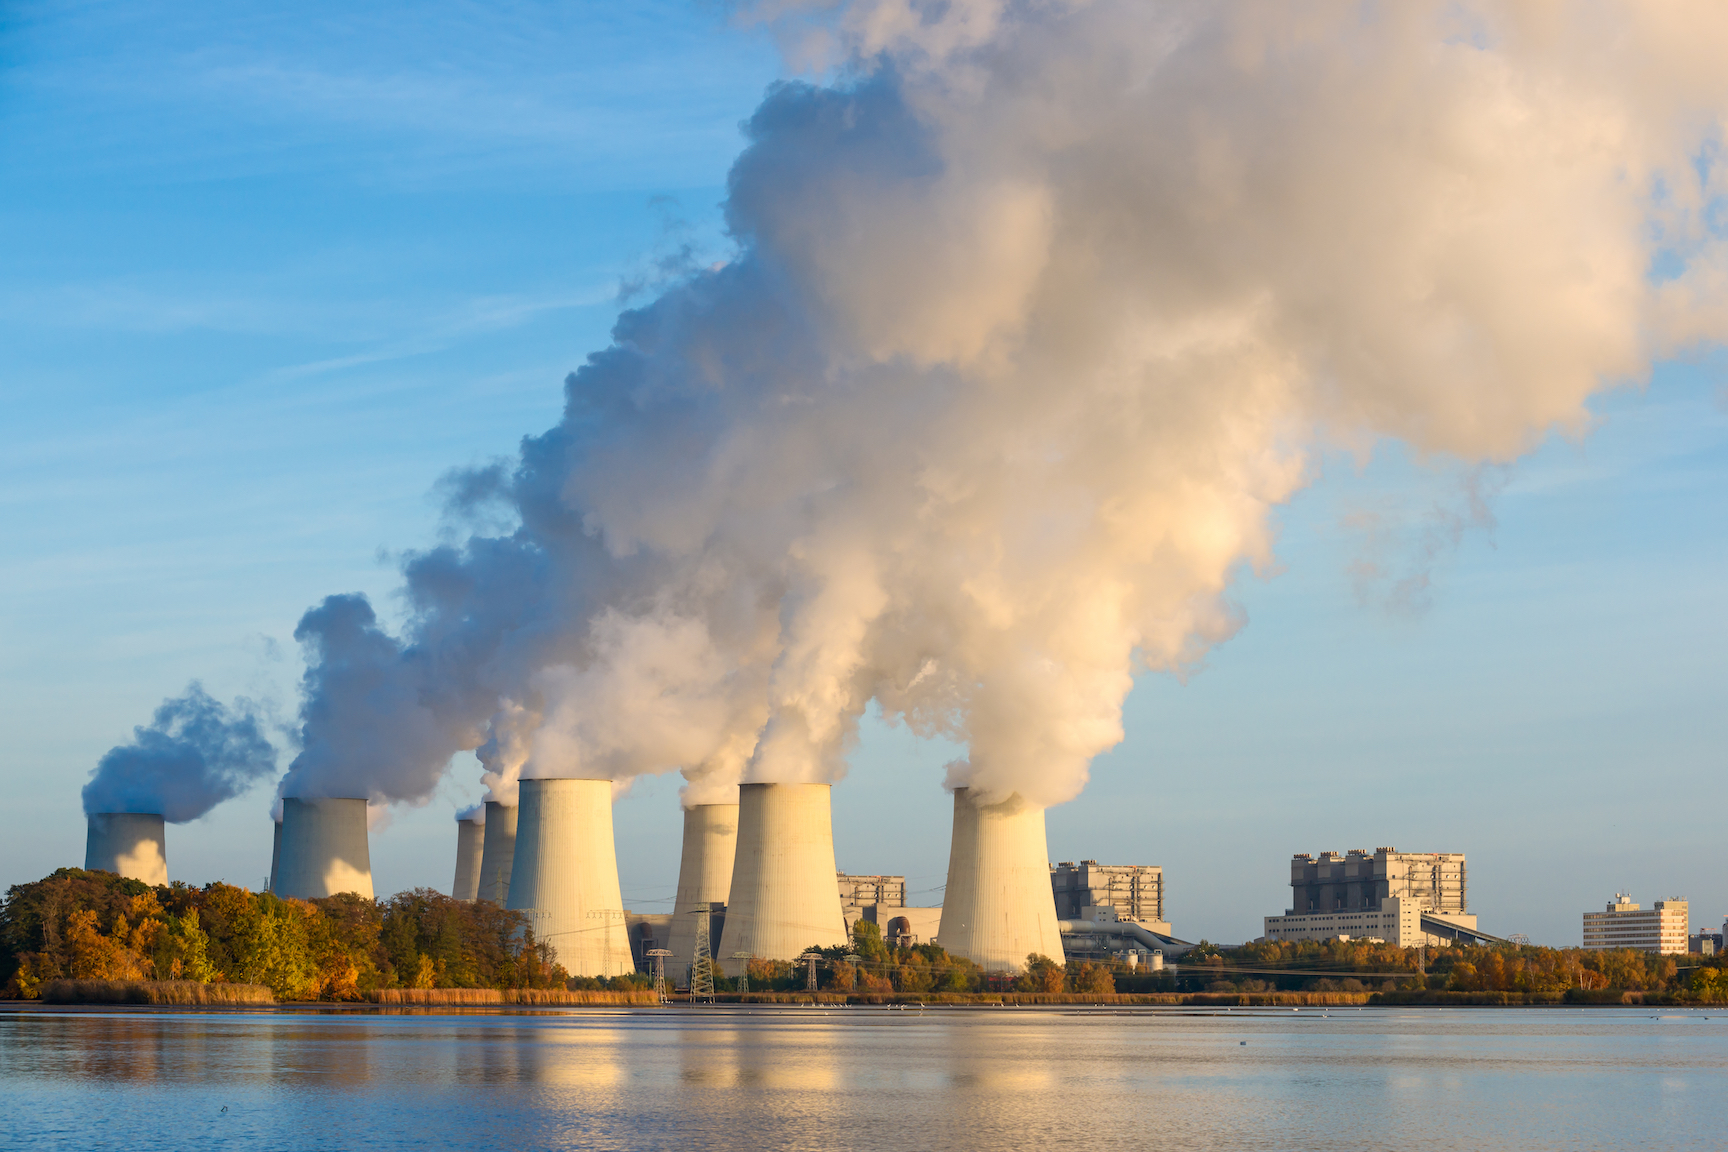 CO2 traps heat in the atmosphere, thus making it the main culprit for climate change. But what if science could find a way to convert CO2 to methanol?